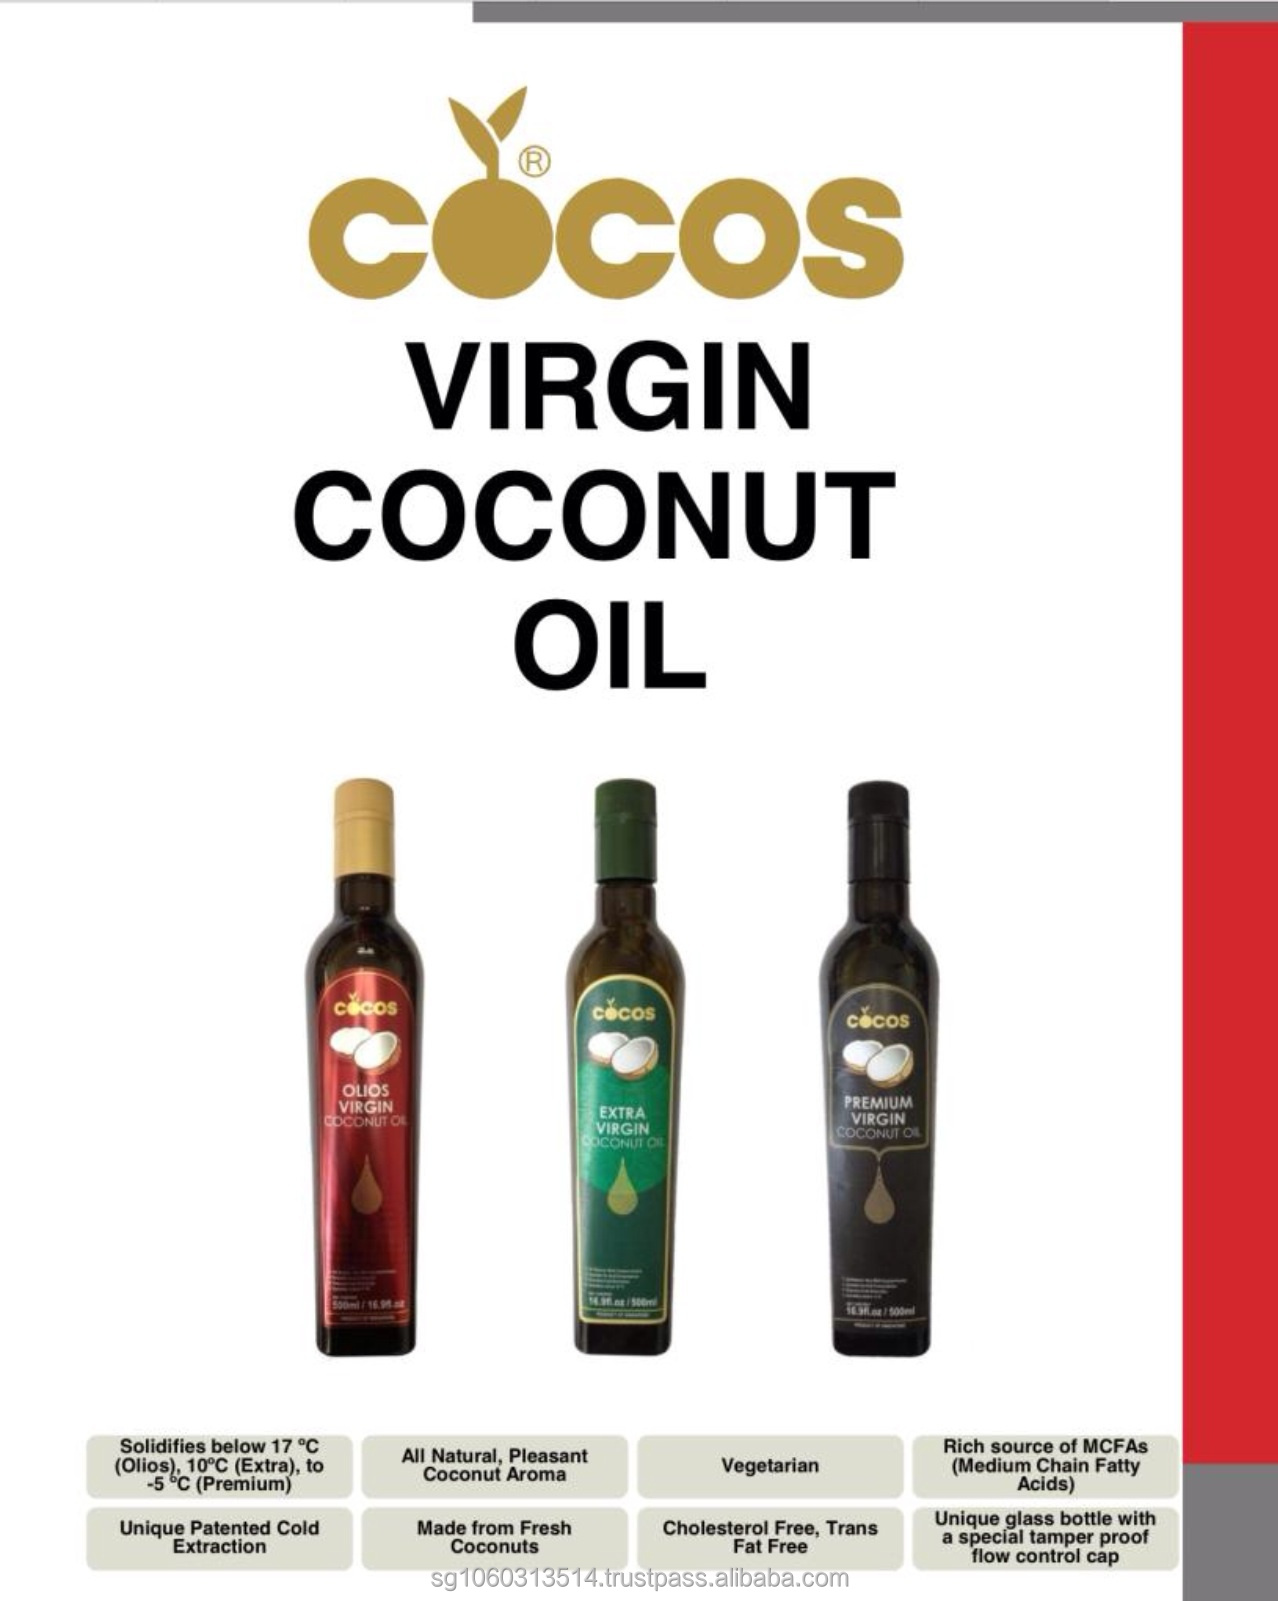 COCOS Premium Organic MCT Oil from Virgin Coconut Oil- Consist of only 99.9% of C8 Caprylic and C10 Capric Acid